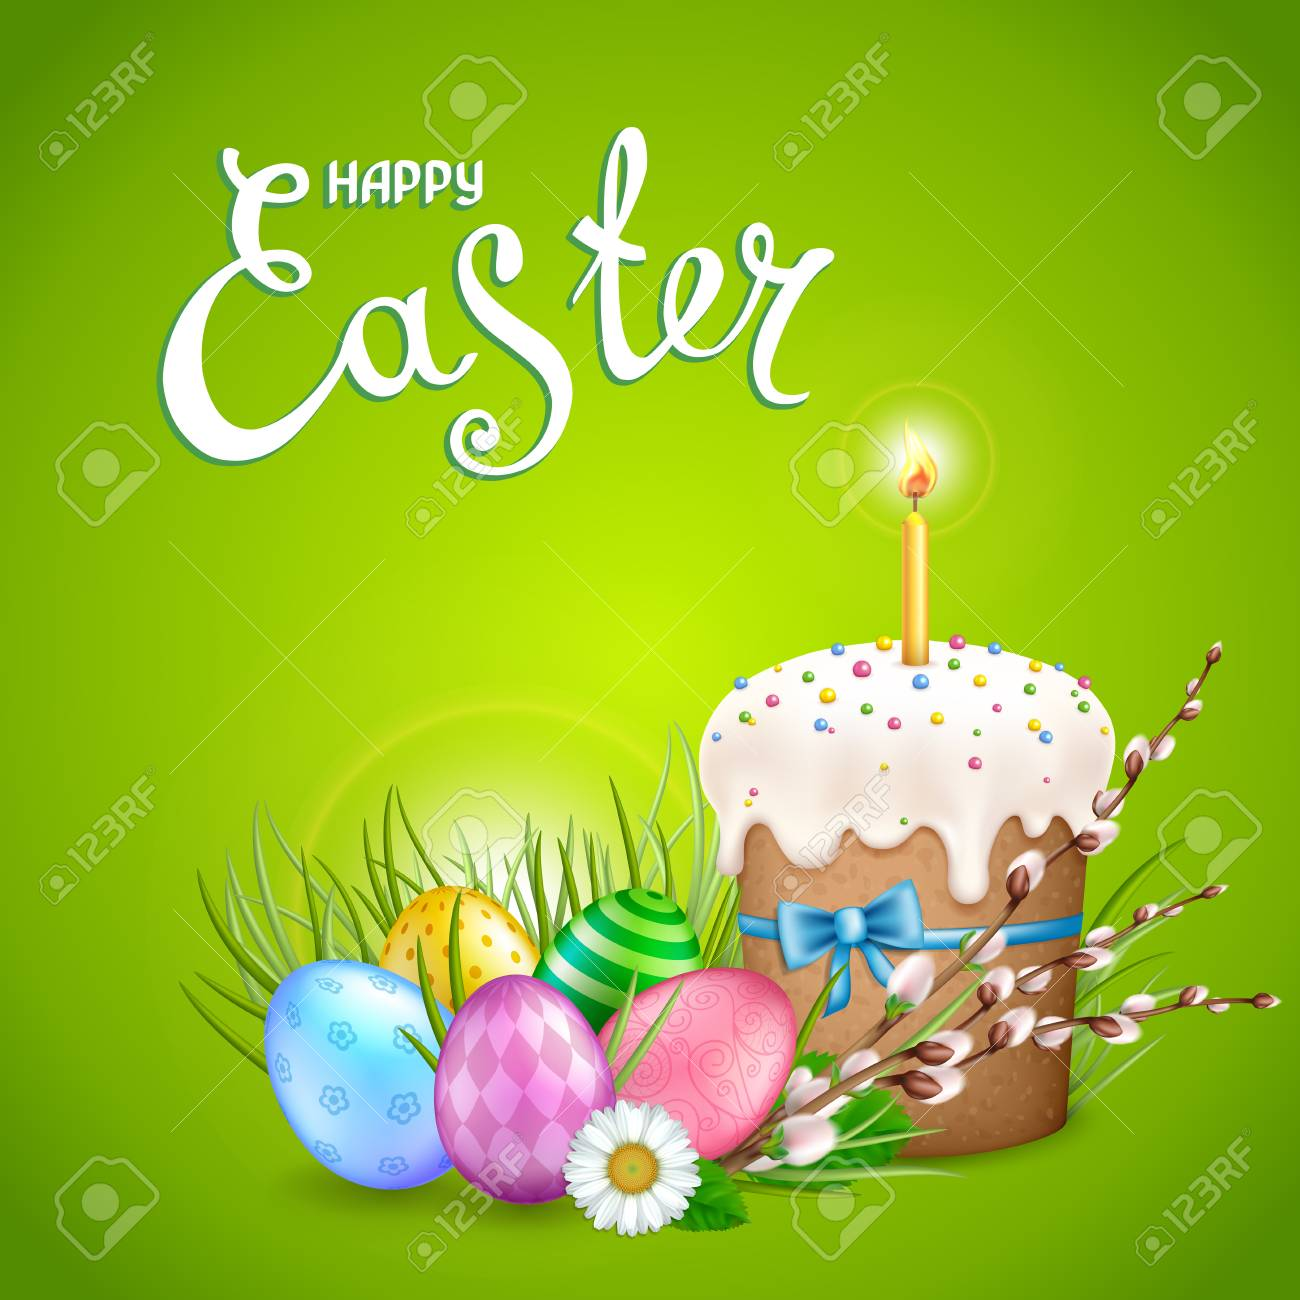 Easter Greeting Card With Realistic Glossy Eggs Cake Candle